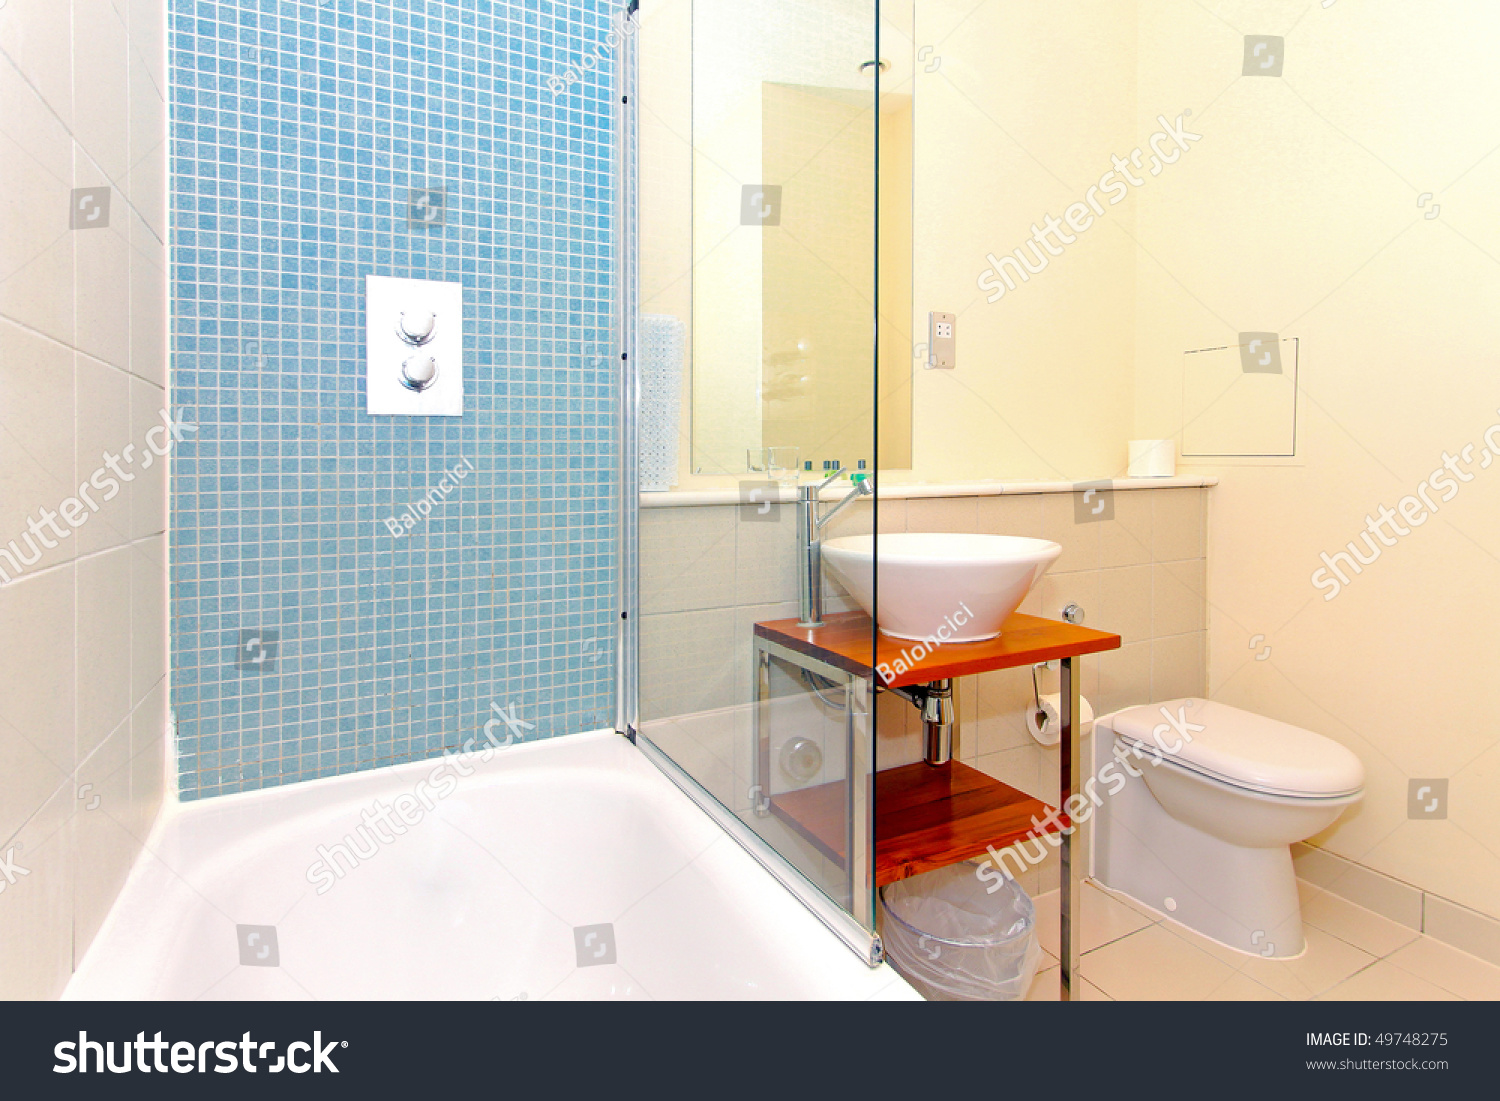 Modern Hotel Bathroom Blue Mosaic Tiles Stock Photo (Safe to Use ...